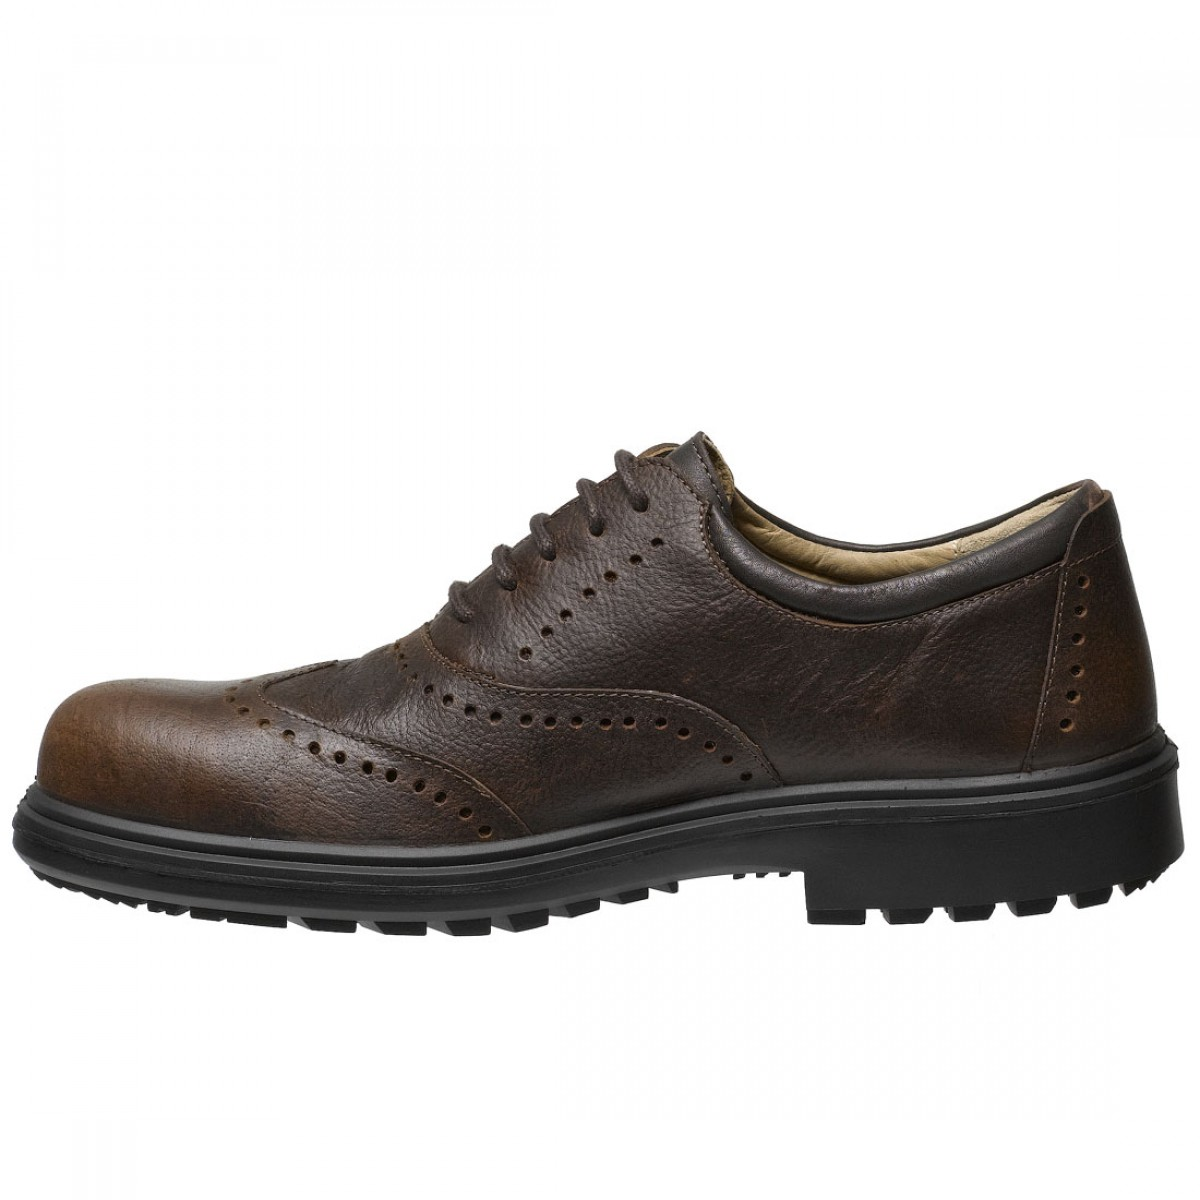 Executive Safety Shoes Brown